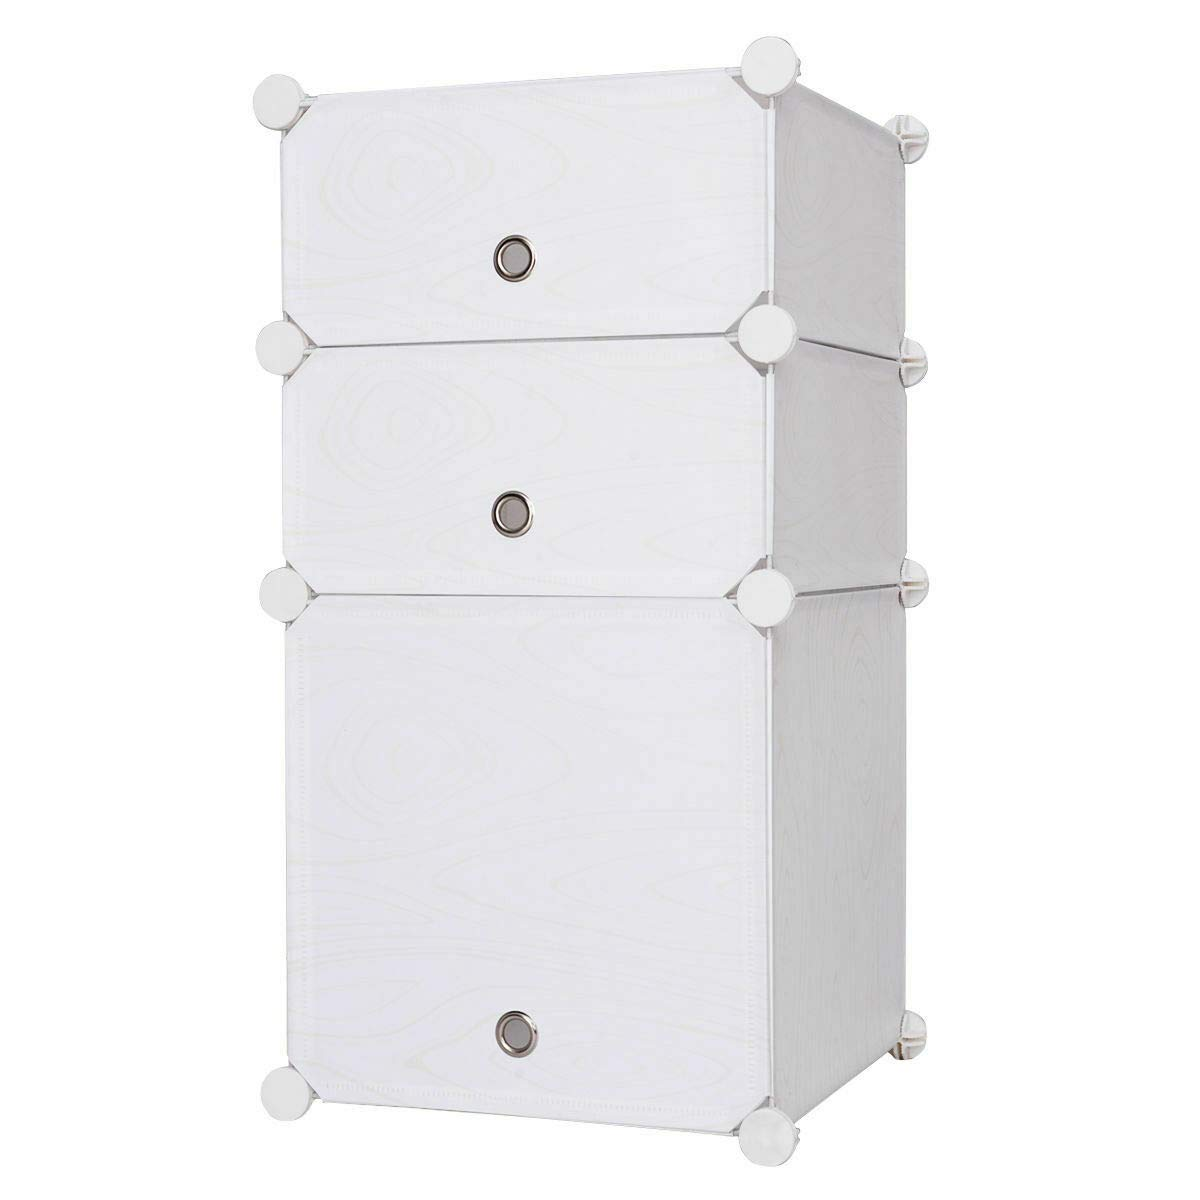 GHP 15.5''x14.5''x29.3'' White PP Plastic Board Living Room 3-Cube Storage Cabinet